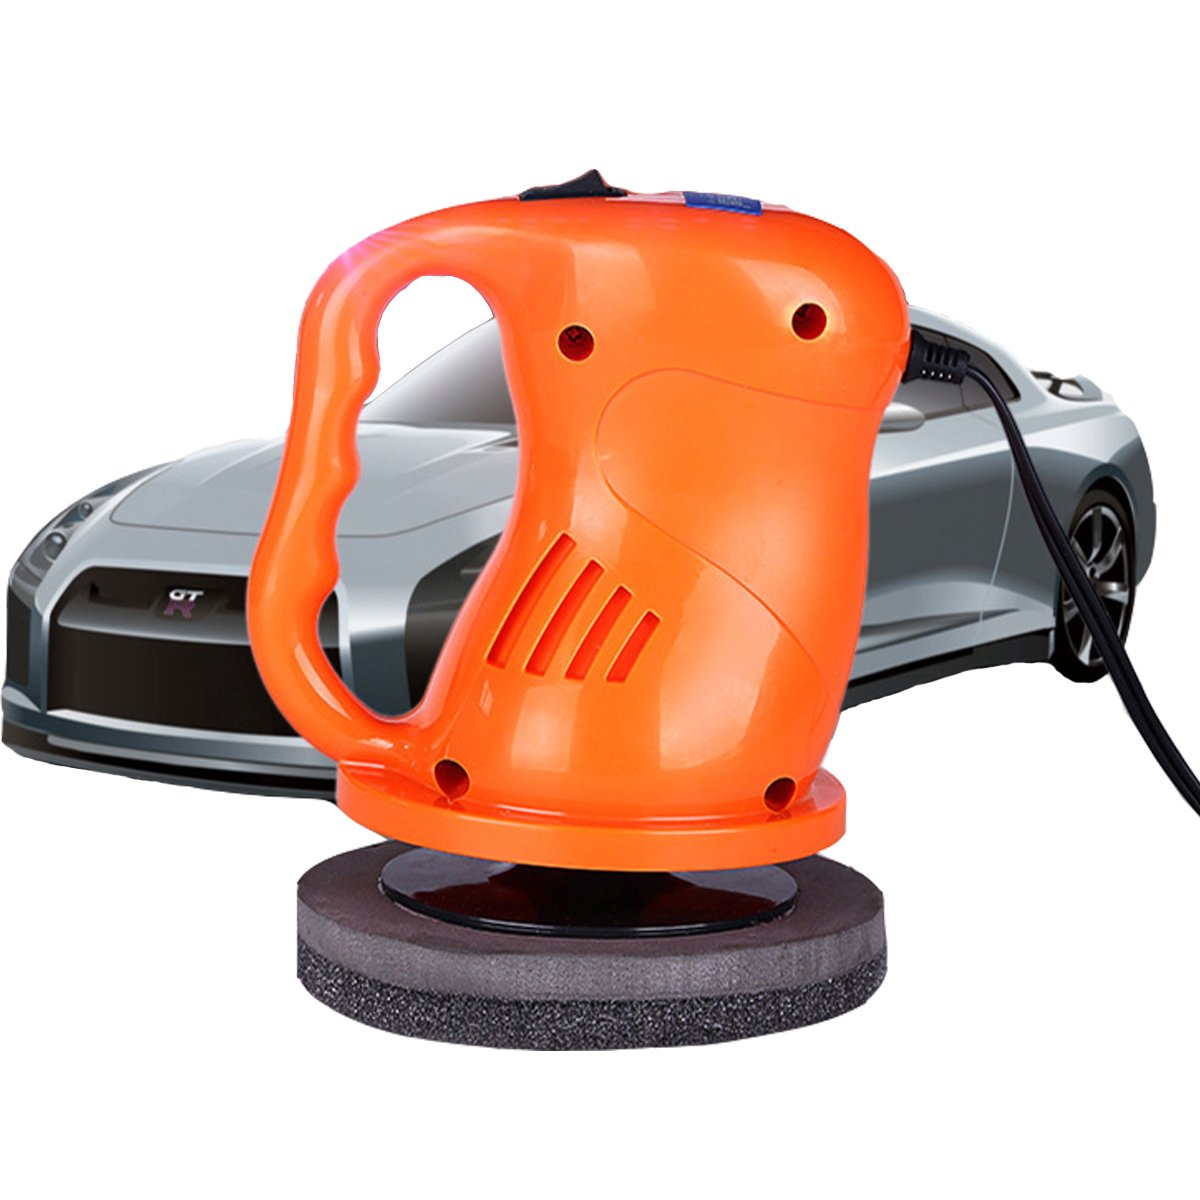 AUTOPDR Car Polishers and Buffers 12V 40W Car Waxing Waxer/Polisher Machine Car Gloss For Car Paint Vehienlar Electric